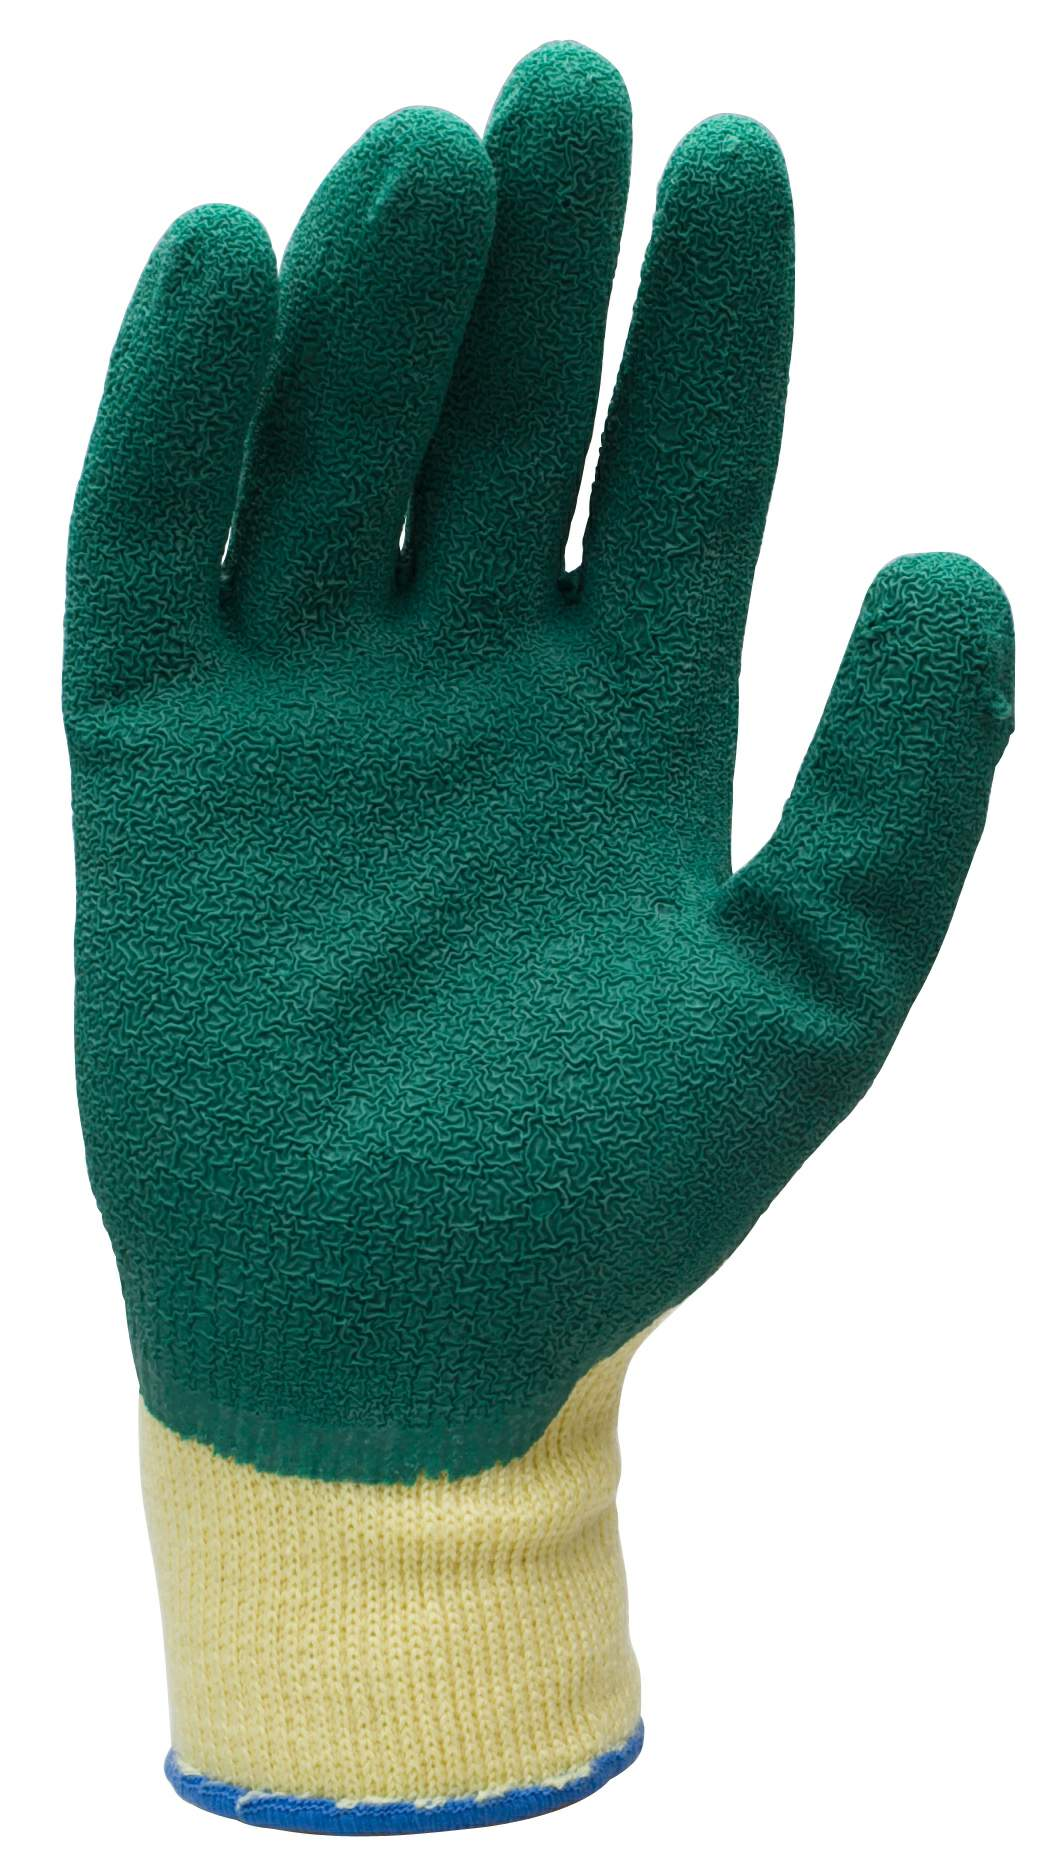 Thumbnail - GREEN RUBBER GRIP GLOVES SIZE 10